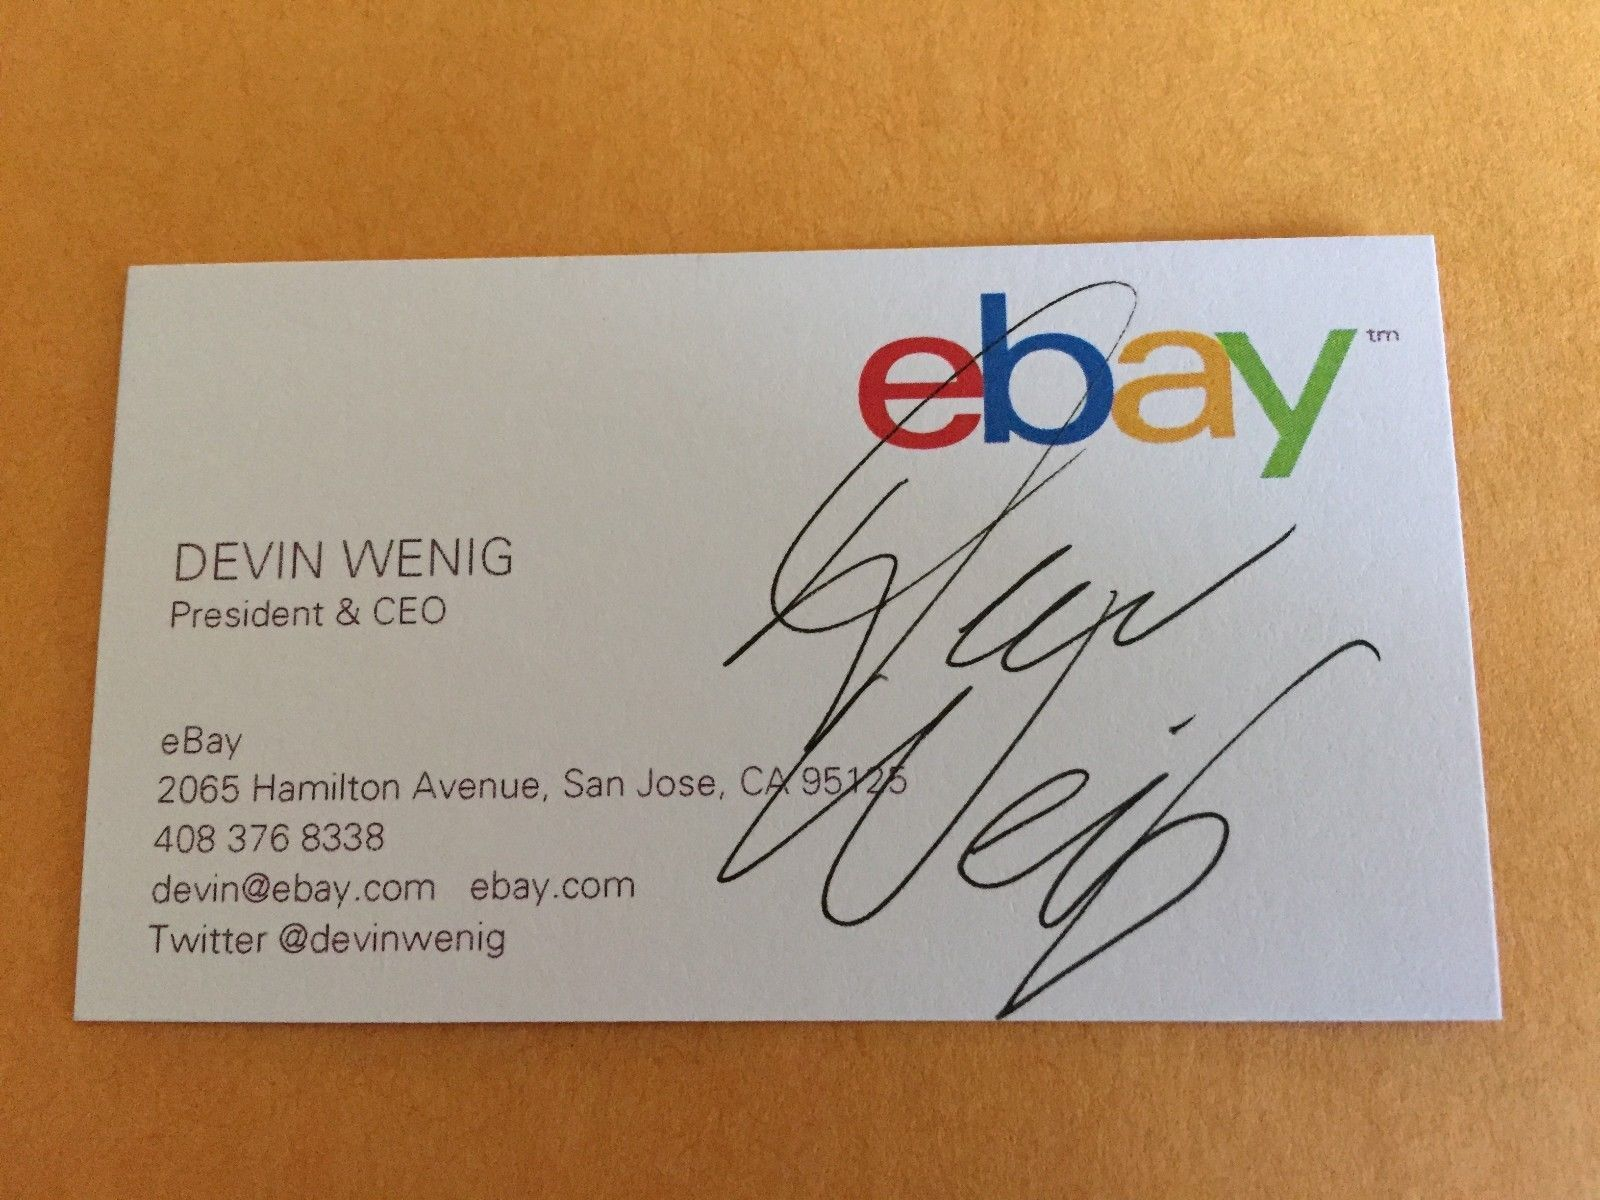 Devin Wenig Autograph Ebay President Ceo Business Card Signed